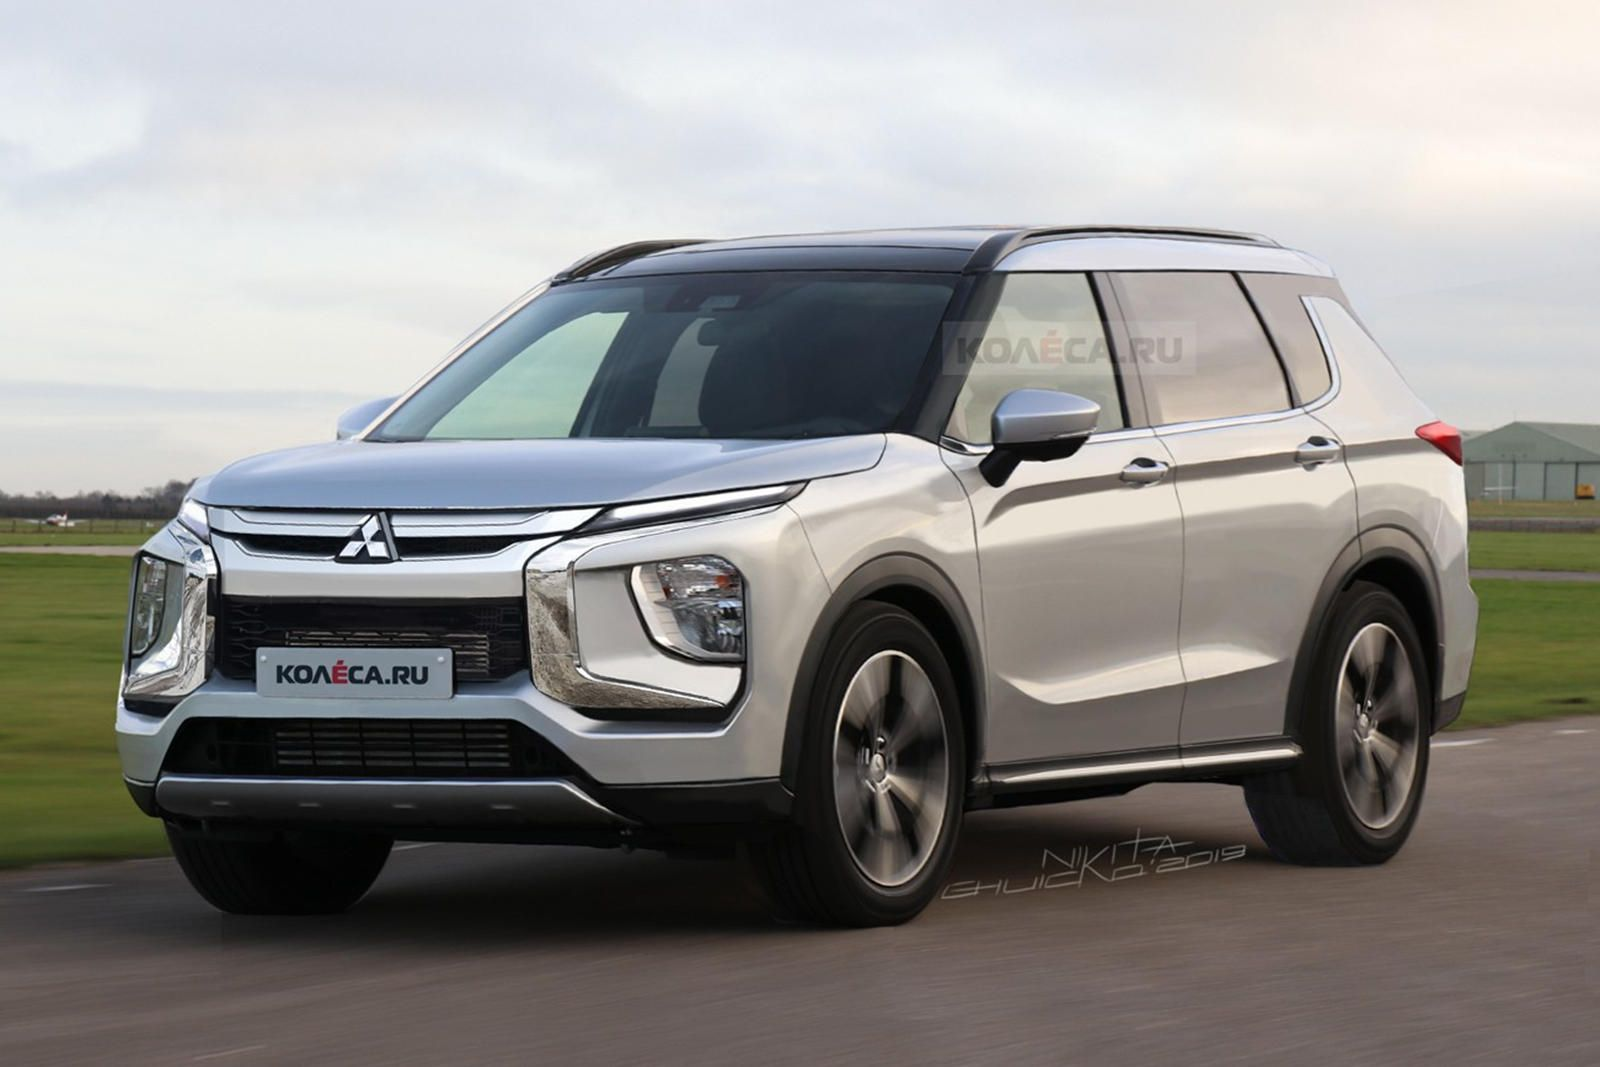 All New 2022 Mitsubishi Outlander Has Nissan Power Previously It Was A Rumor And Now Documents Prove It Mitsubishi Suv Mitsubishi Outlander Outlander Phev